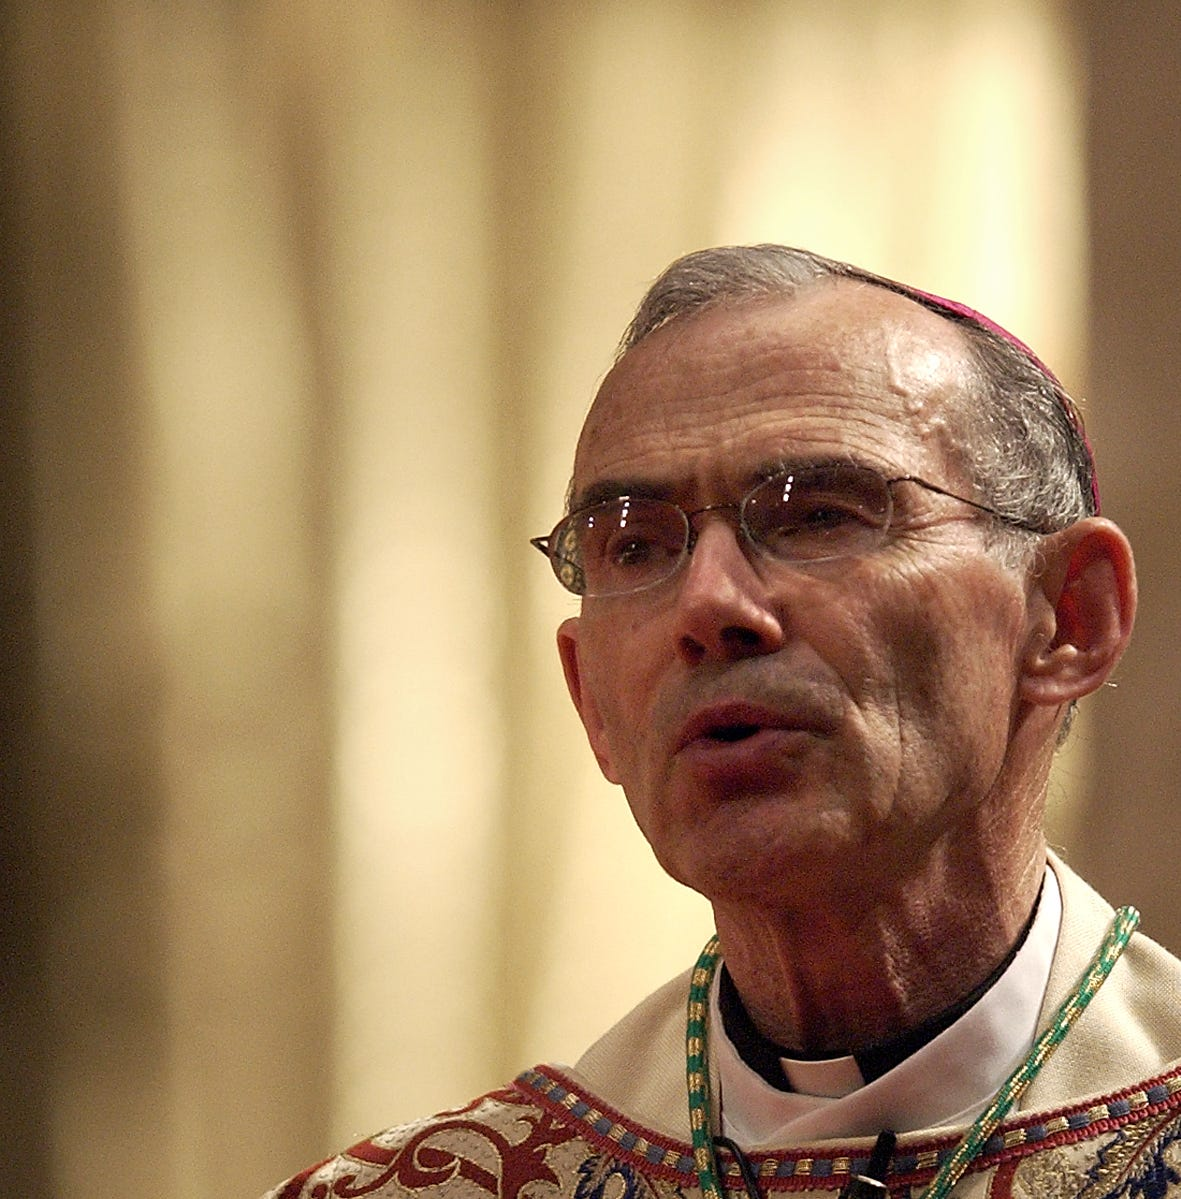 Retired Bishop Morneau admits to not reporting priest's sex abuse, withdraws from ministry